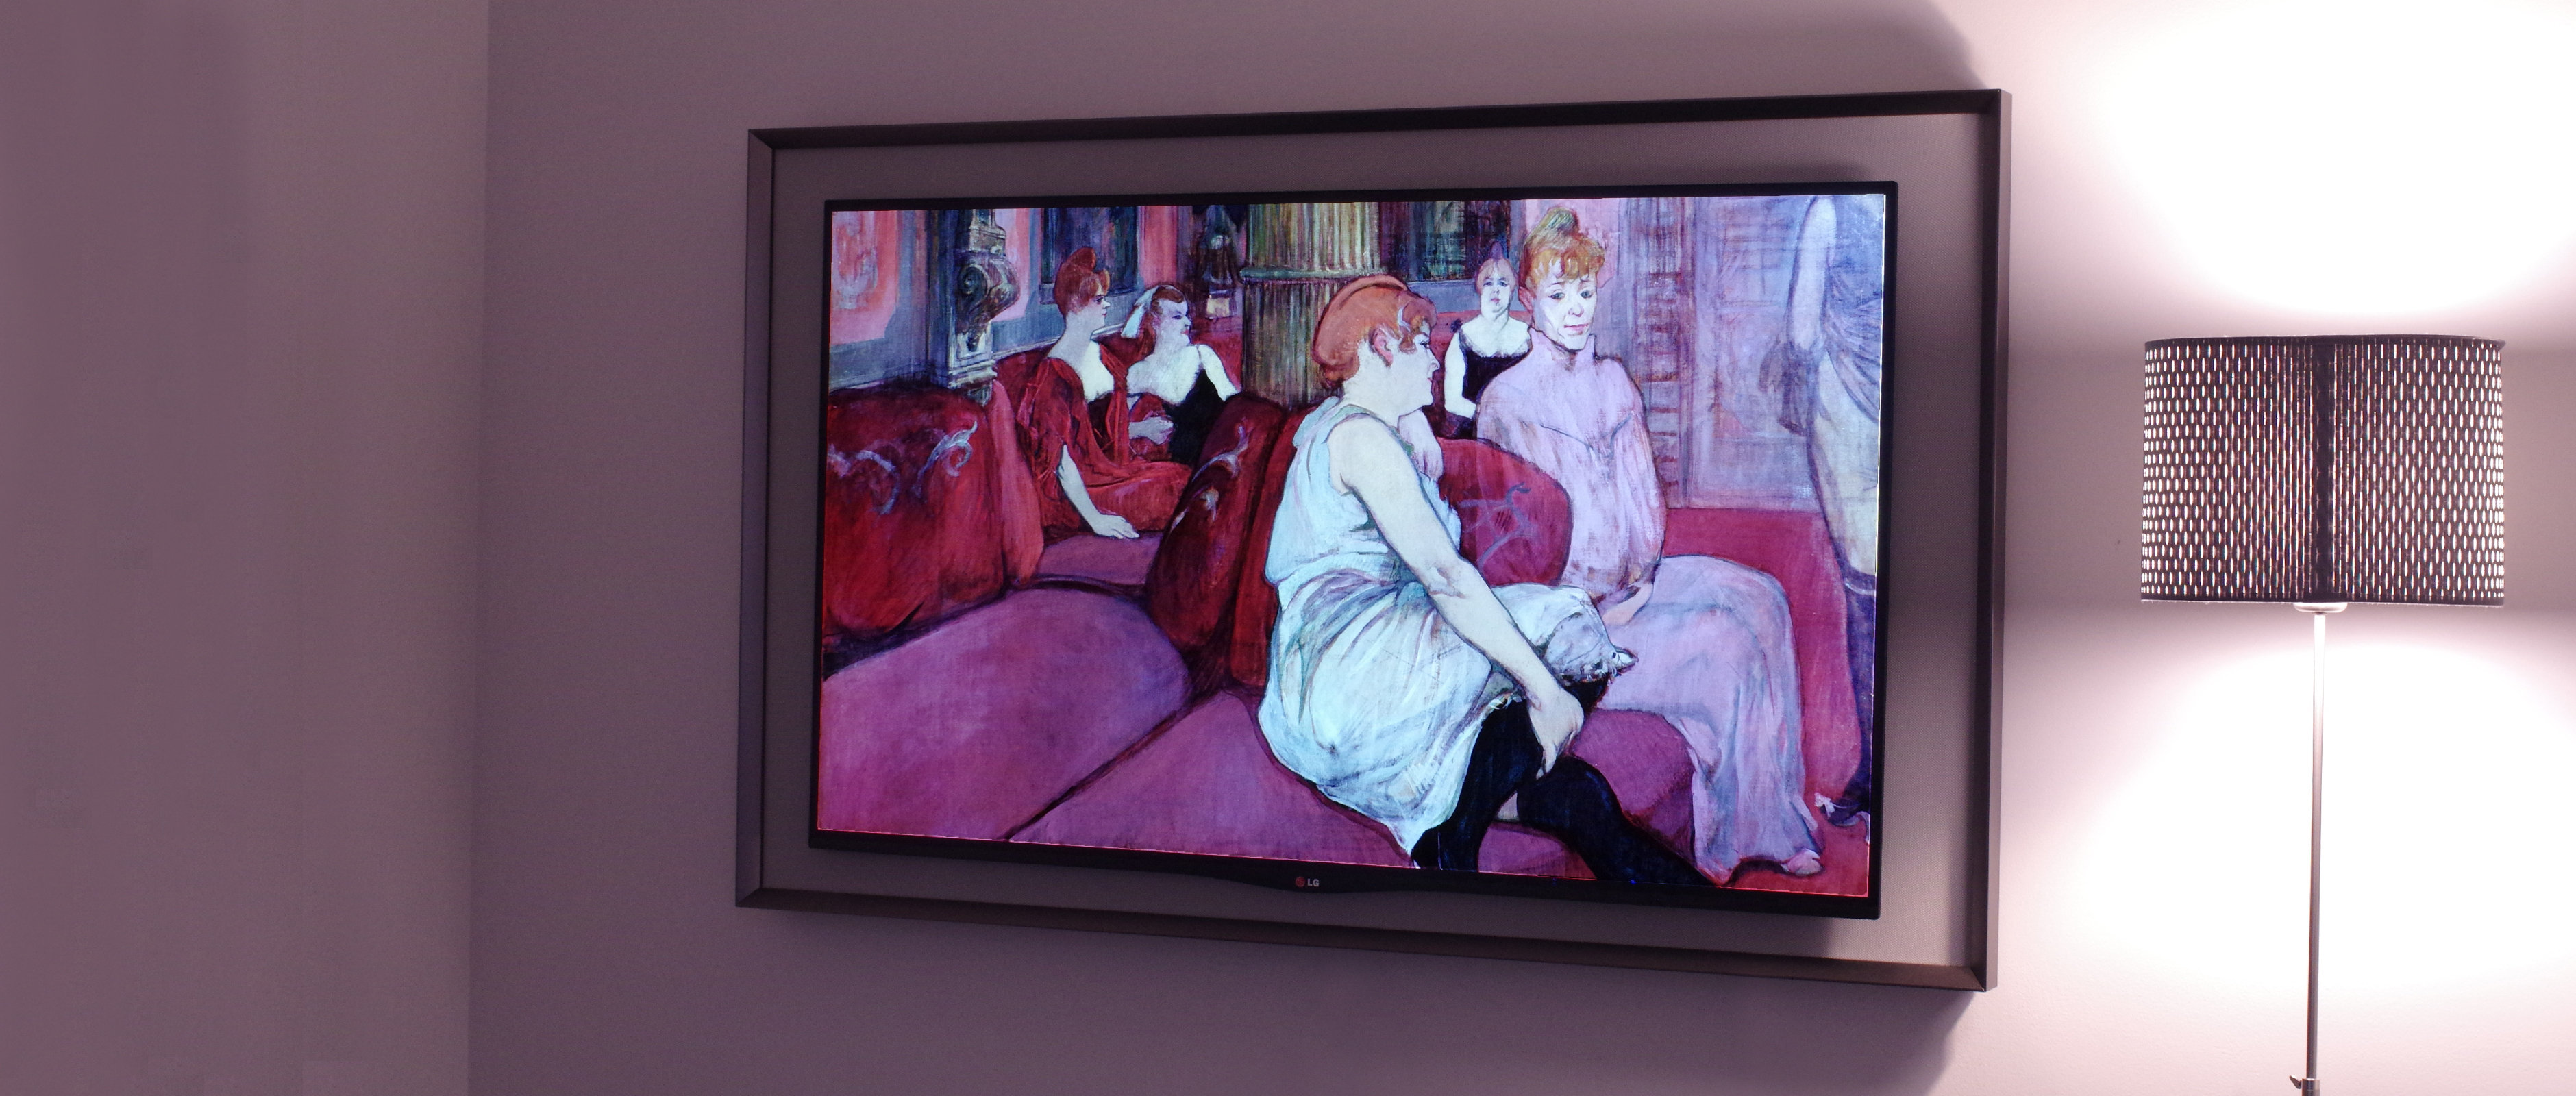 LG' Gallery OLED, the 55EA8800, is a stunning machine.